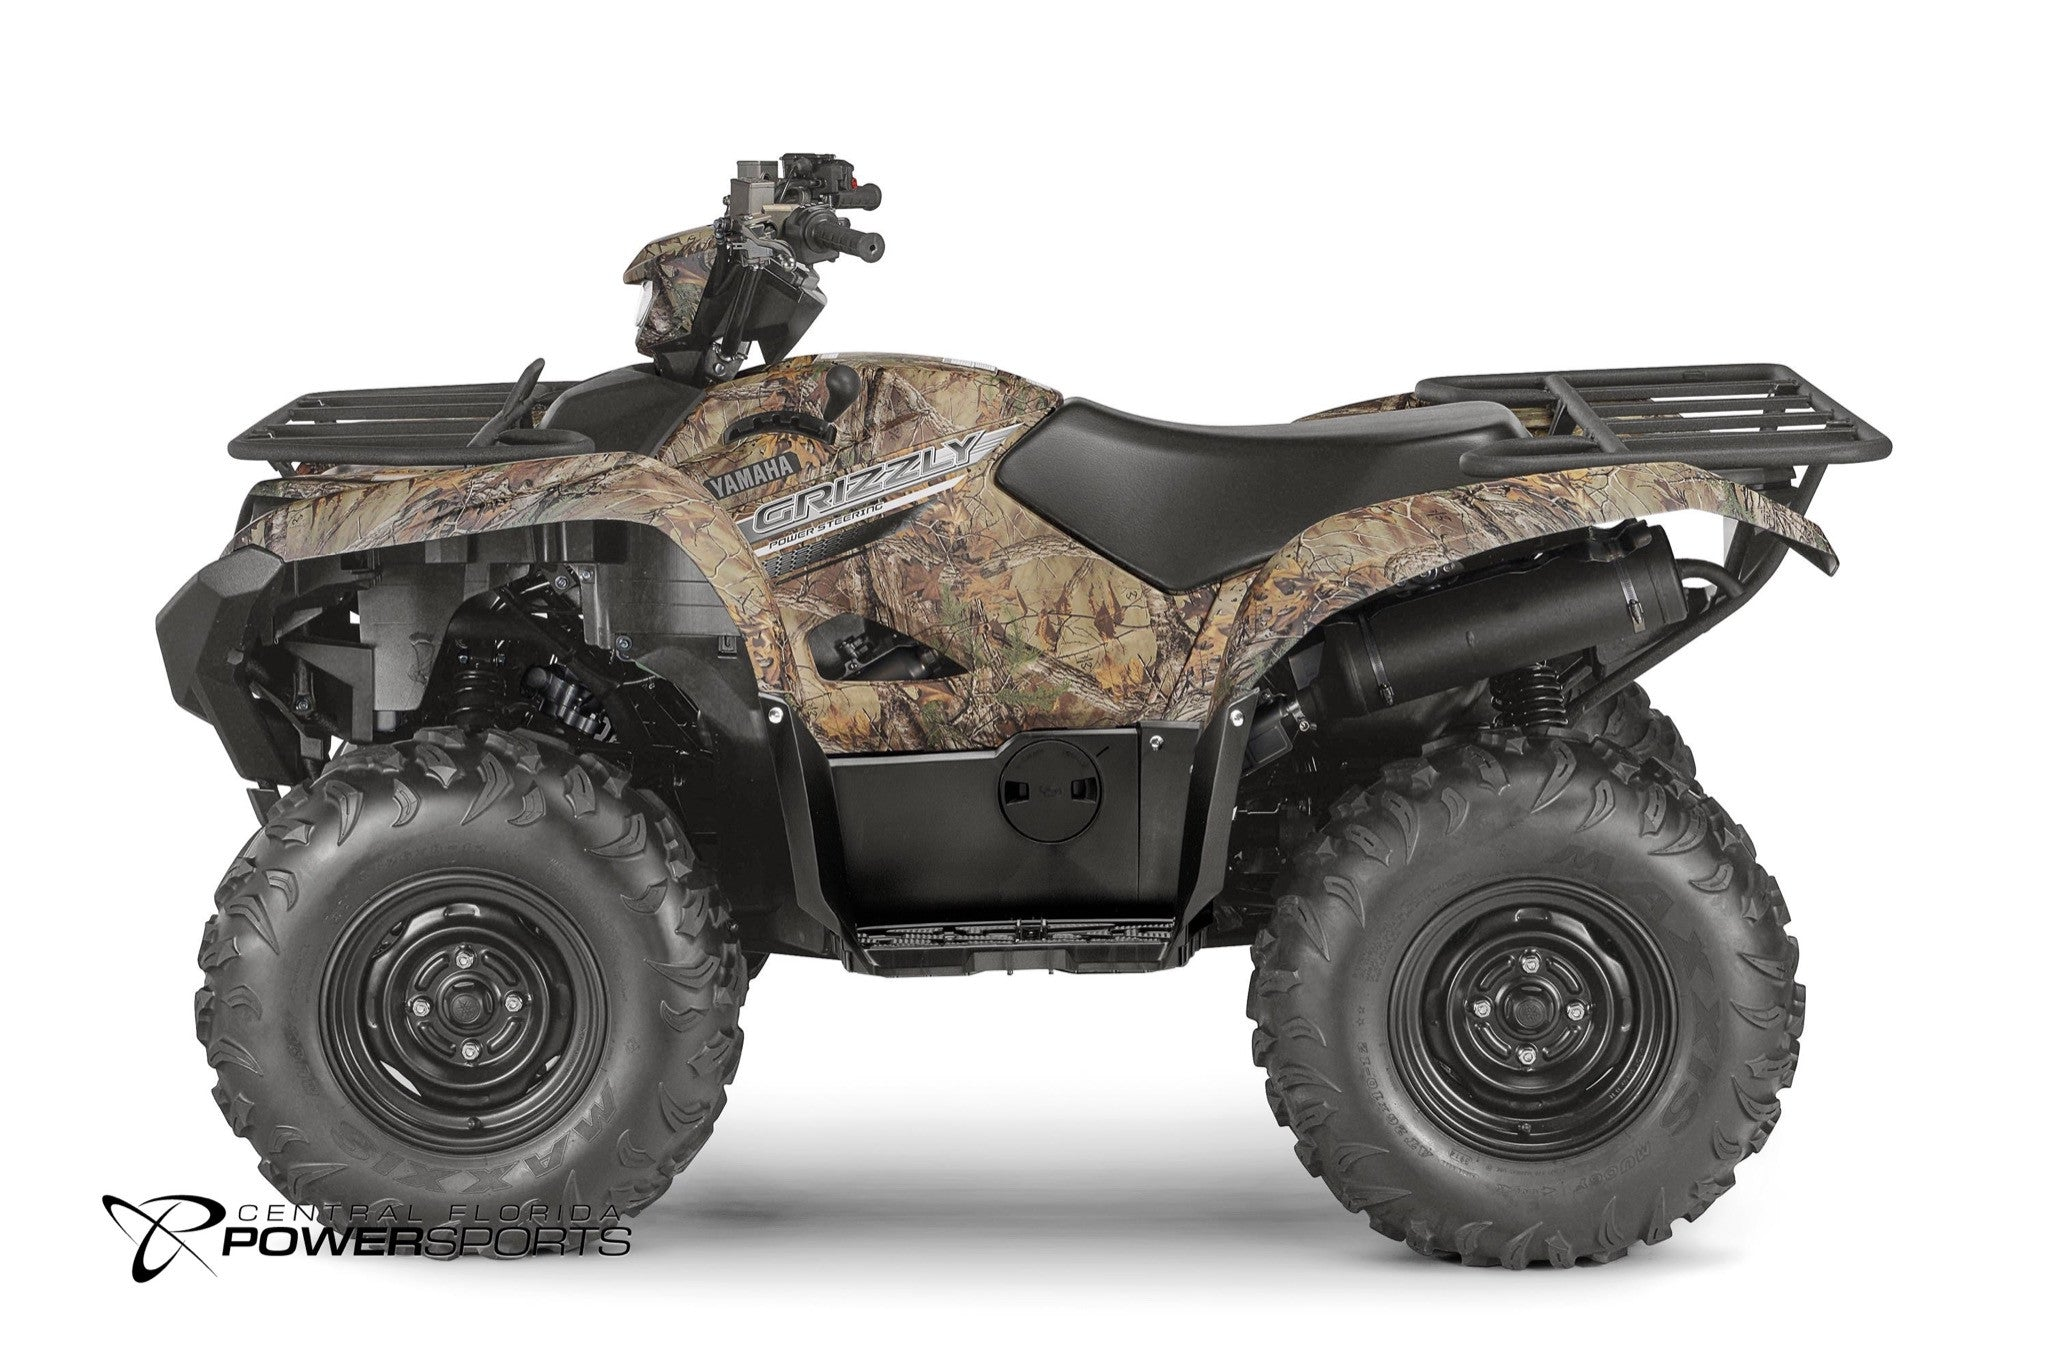 Yamaha Grizzly 700 >> 2017 Yamaha Grizzly 700 Eps 4wd Utility Atv For Sale Central